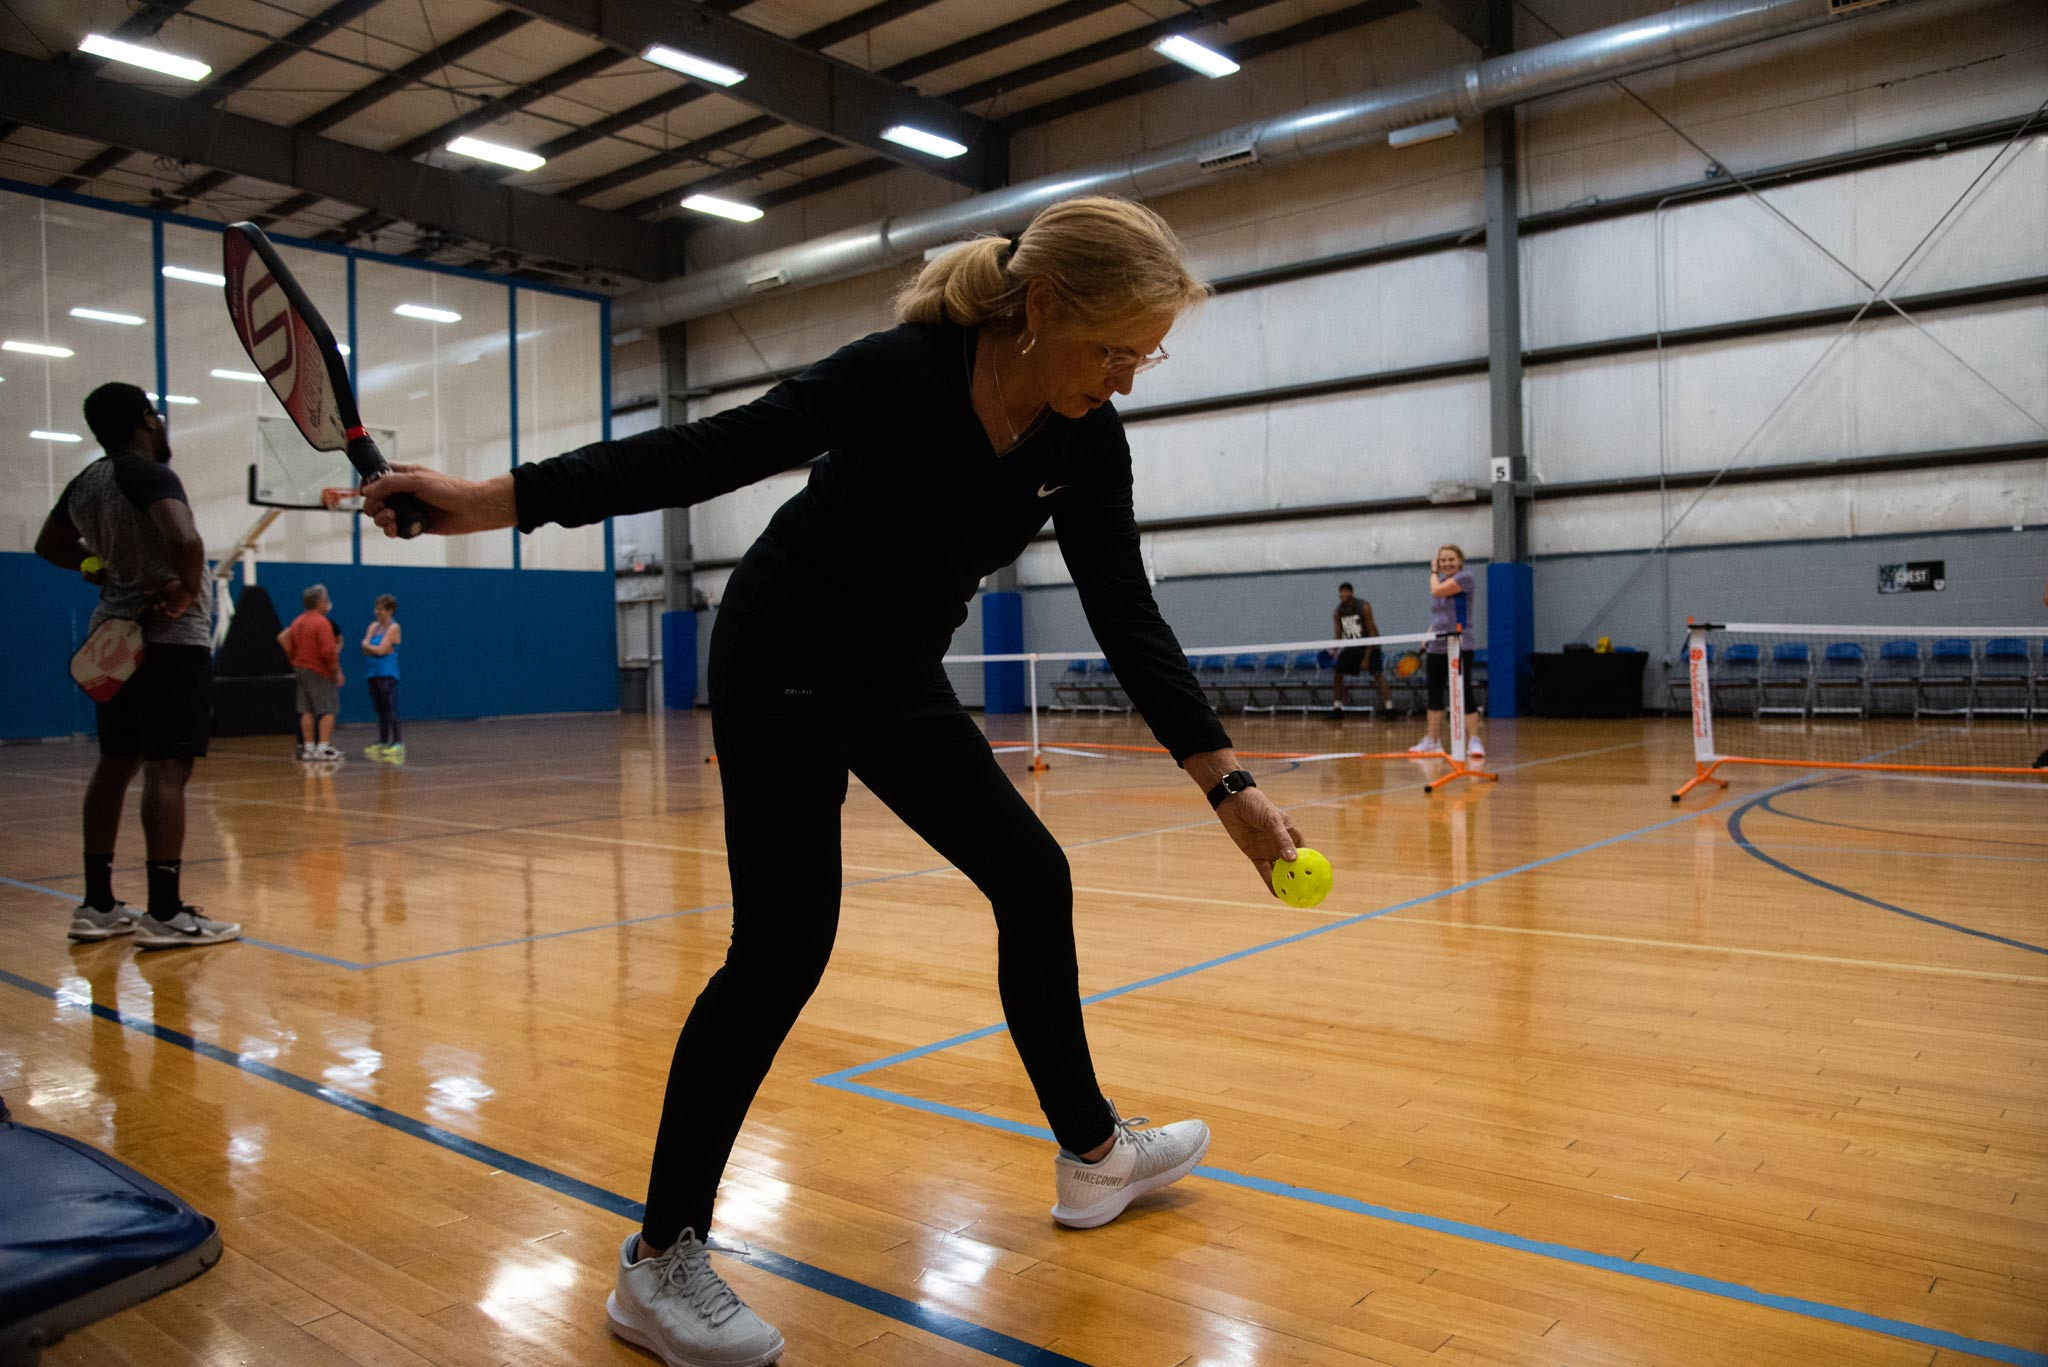 Donna prepares to serve the ball at a pickleball game.